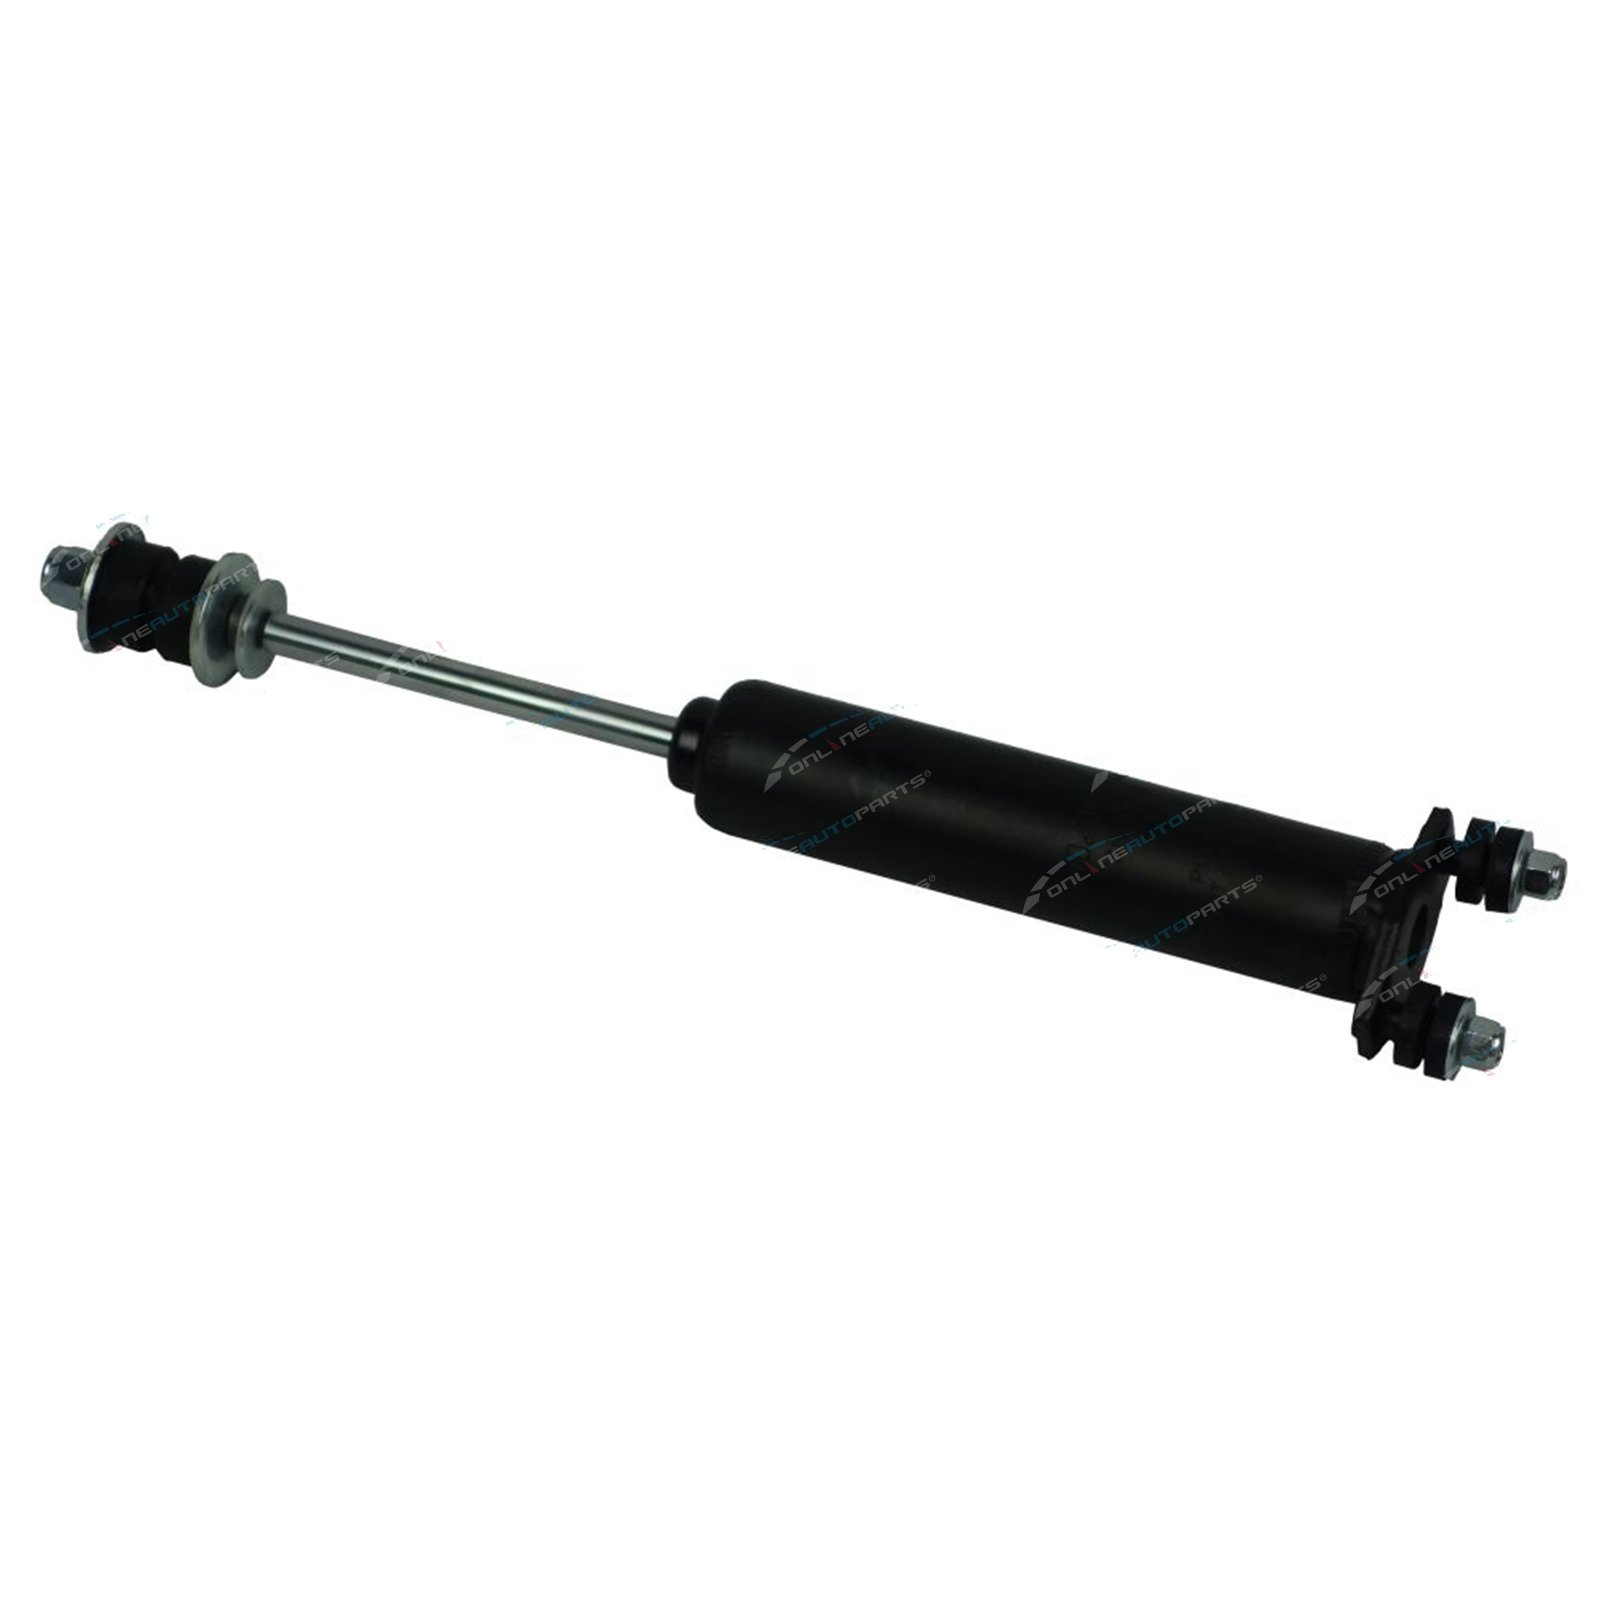 360069 Shock Absorber Ultima suits Ford Falcon XE